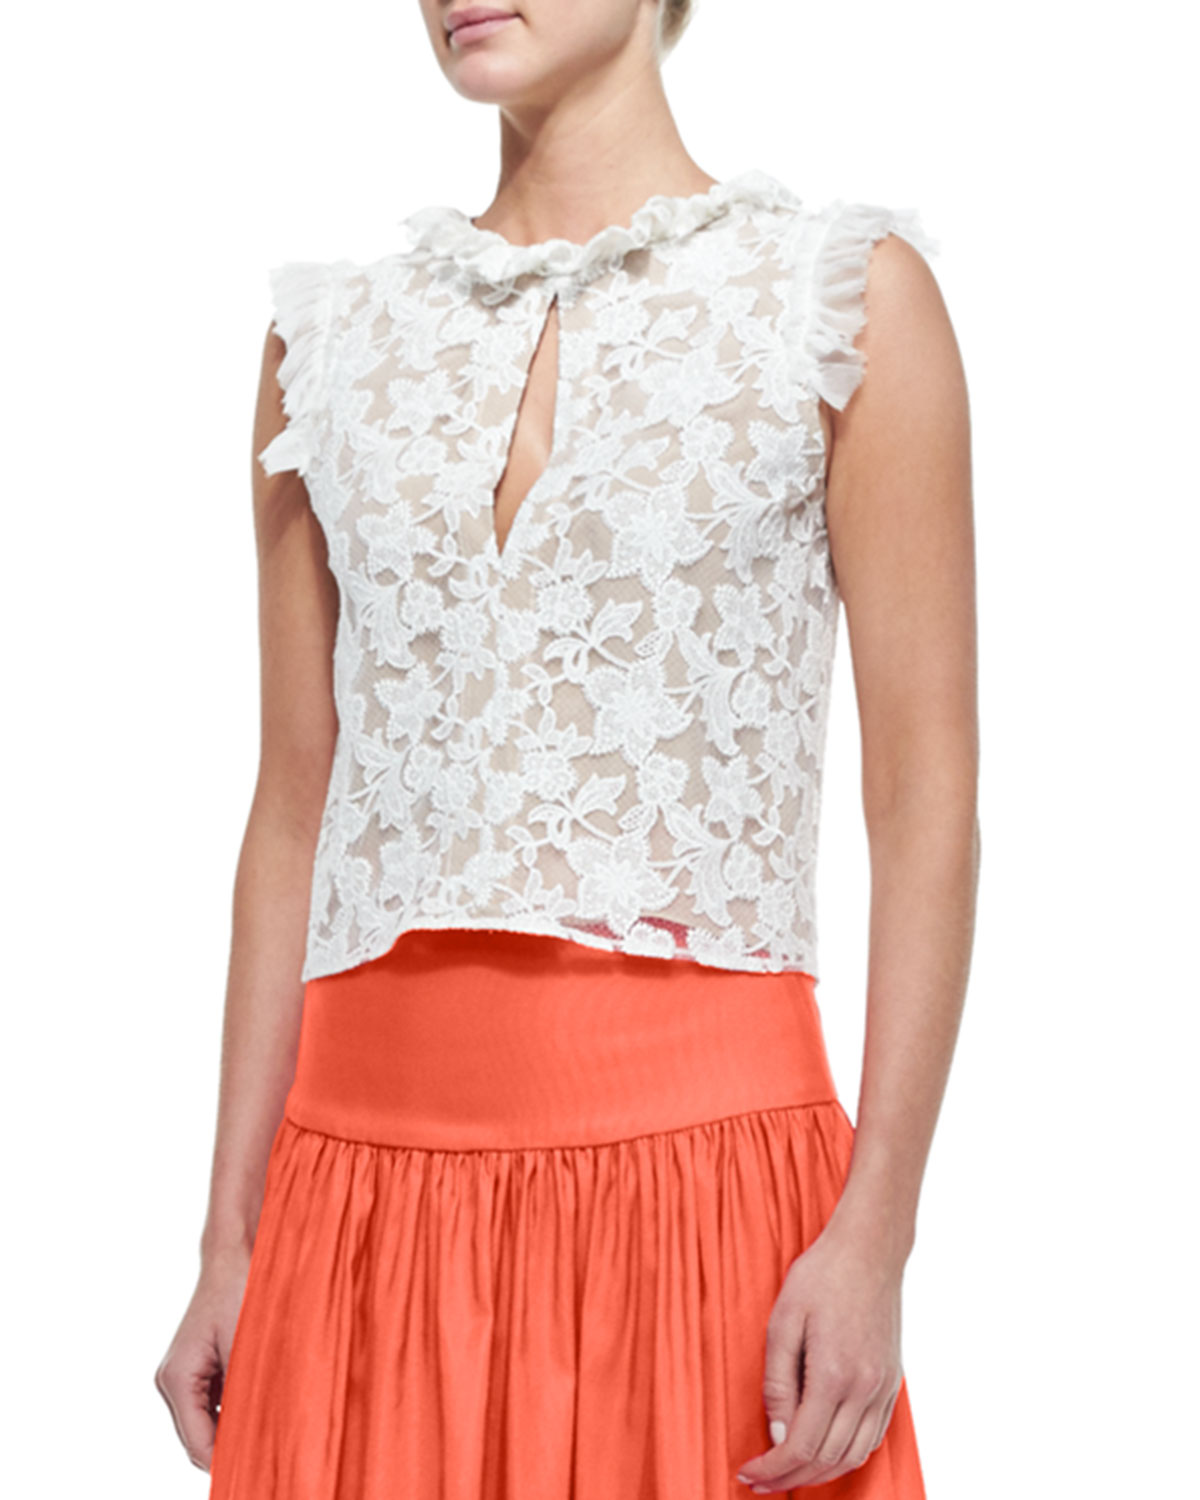 b21a32c6c975e Alexis Fran Sleeveless Ruffle-Trim Lace Crop Top